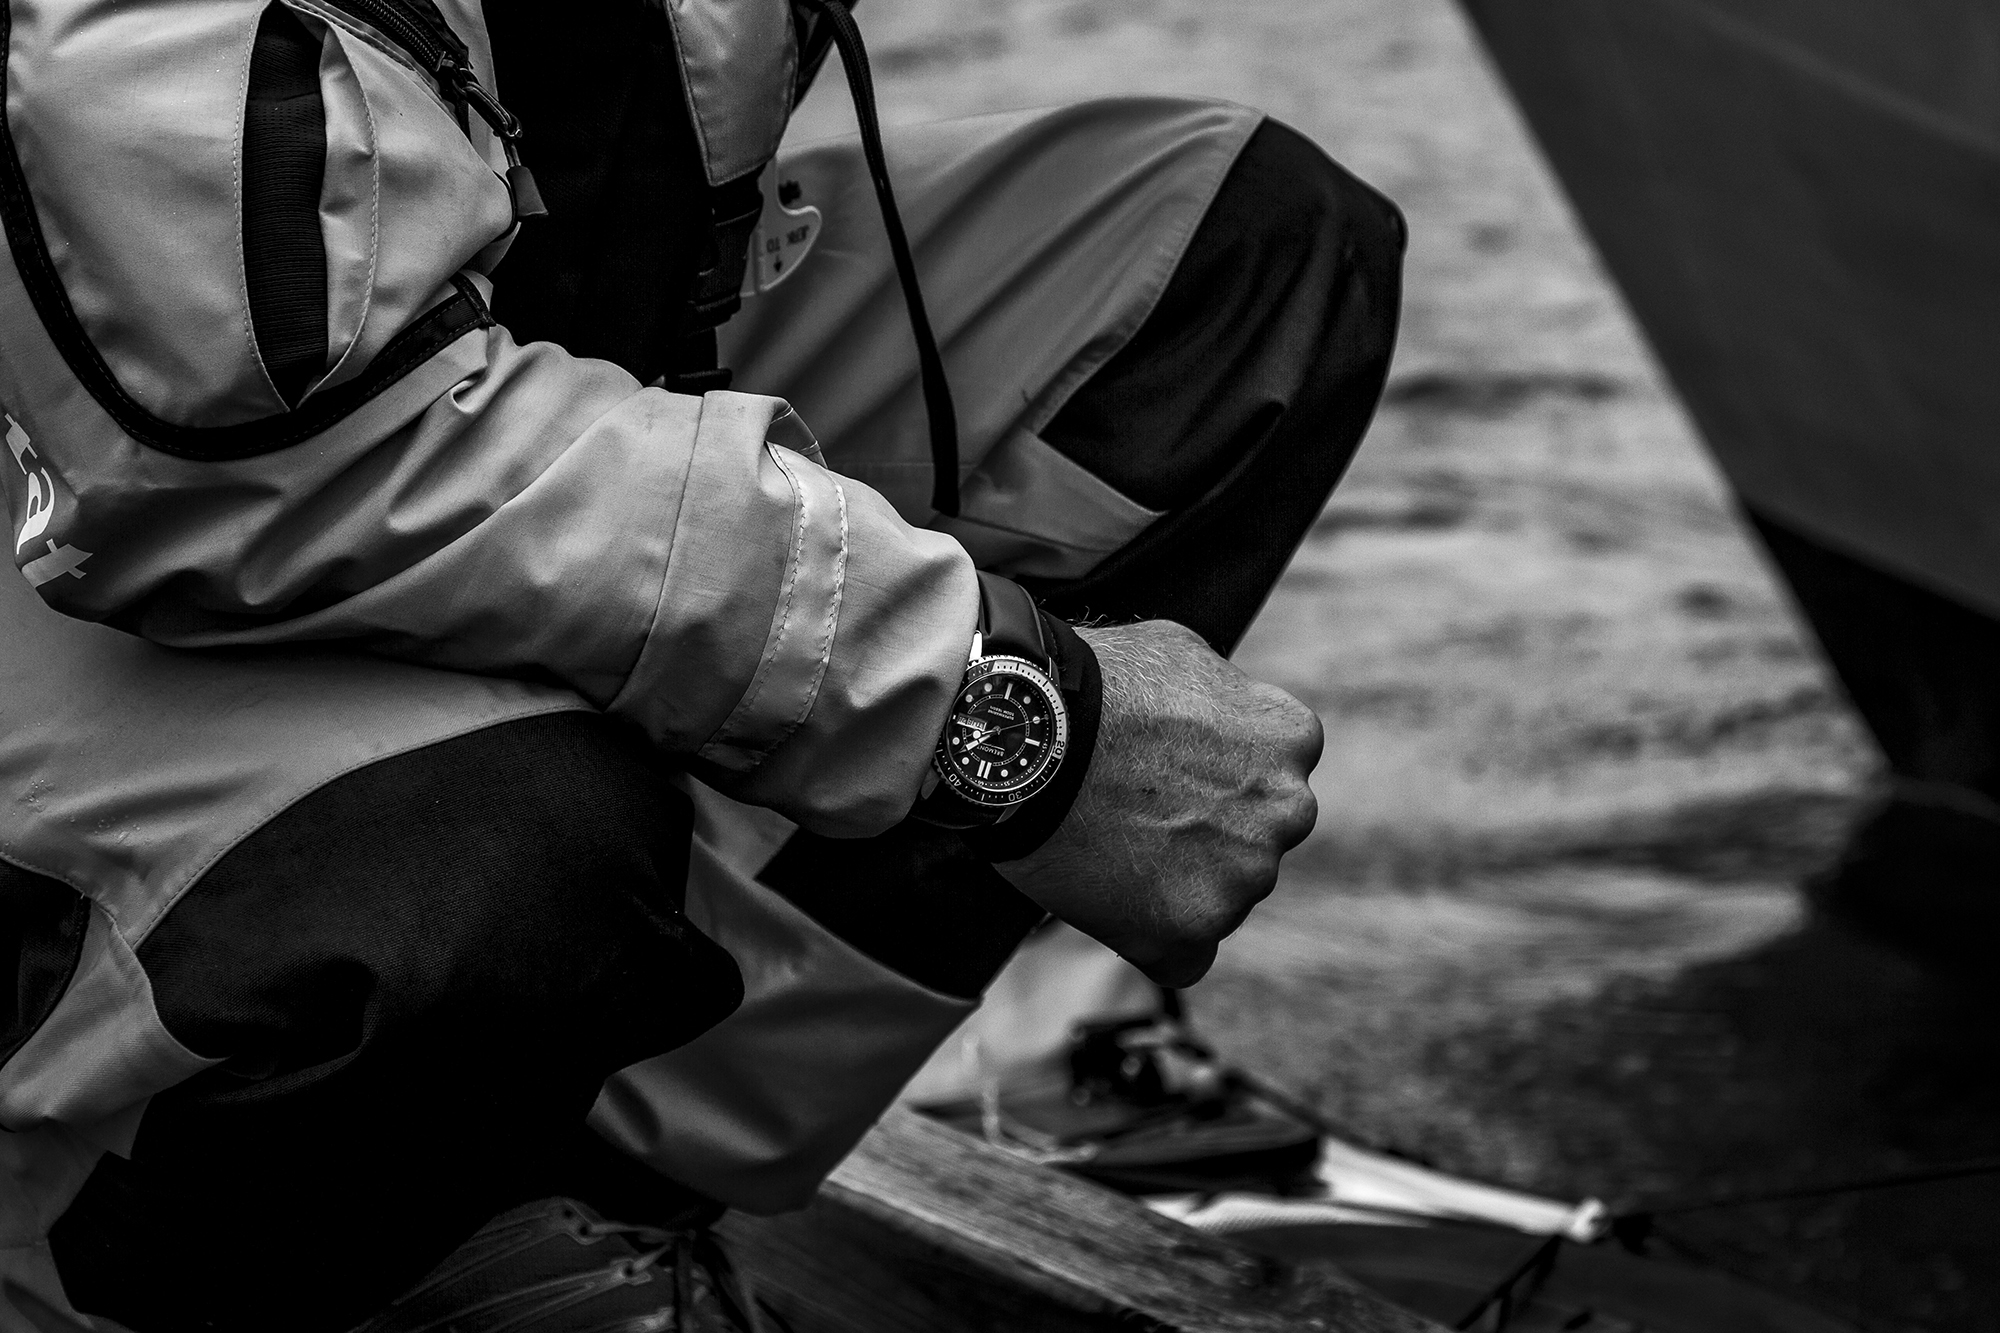 Olly Hicks' Bremont Supermarine S500